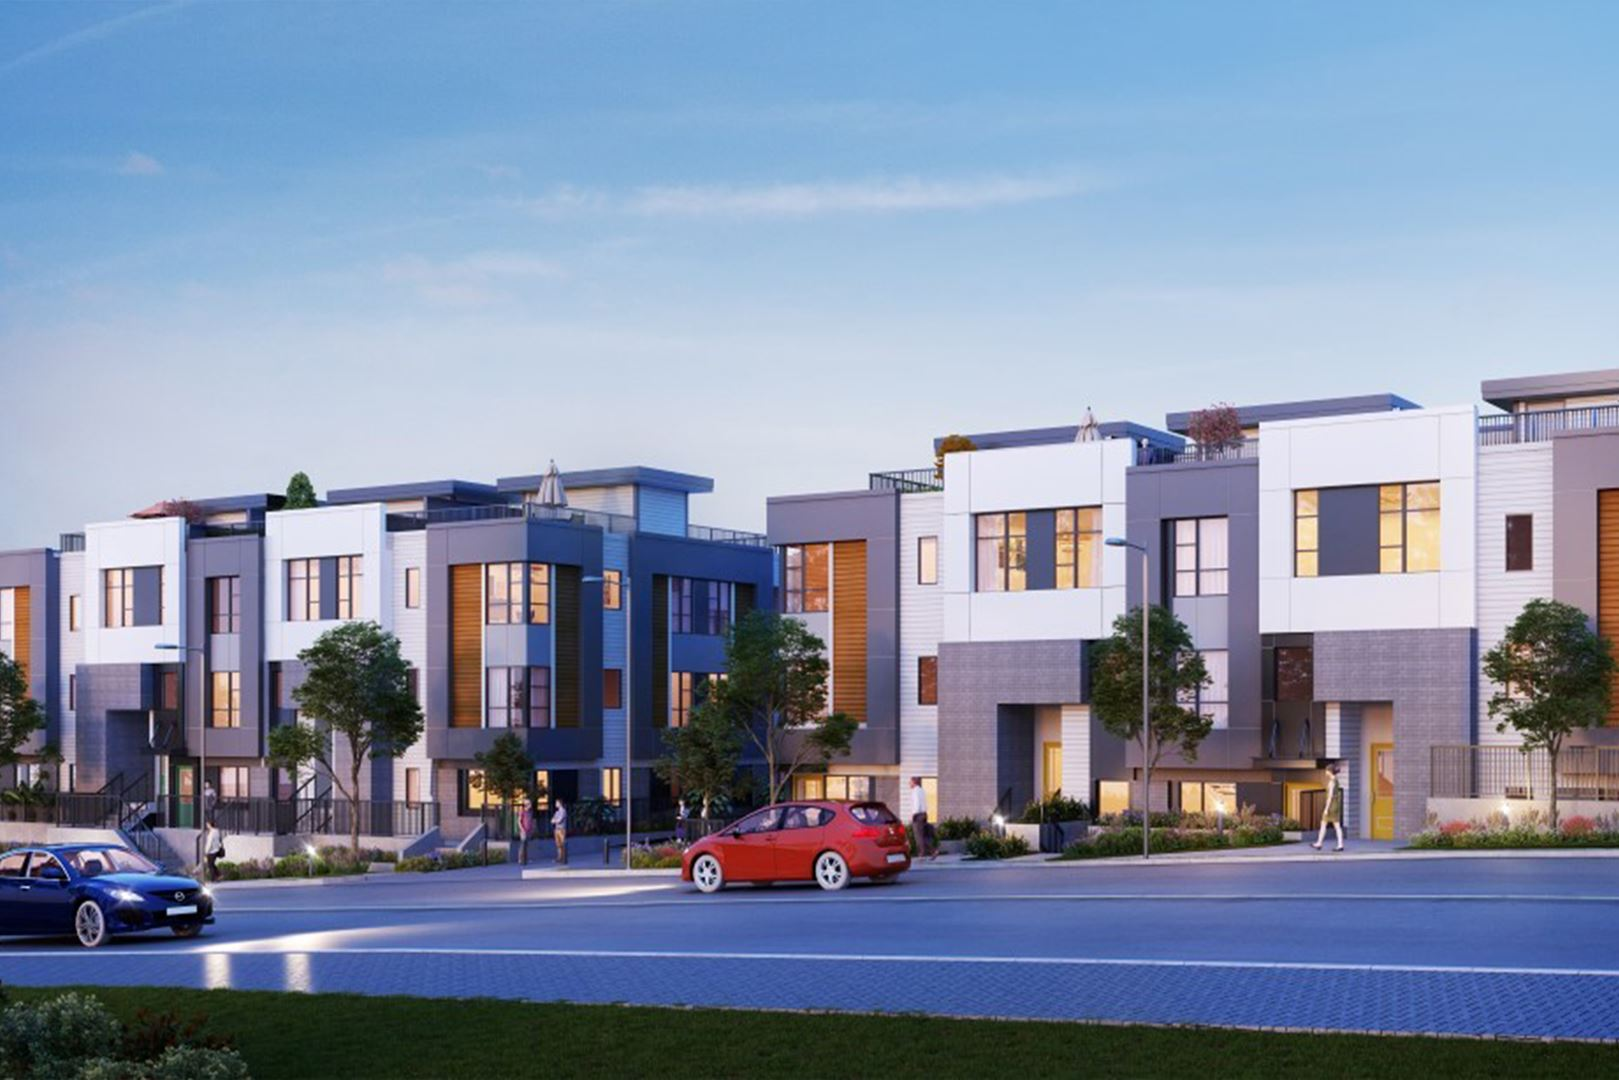 Unity Townhomes Abbotsford By Parcel7 – Prices, Plans, Availability